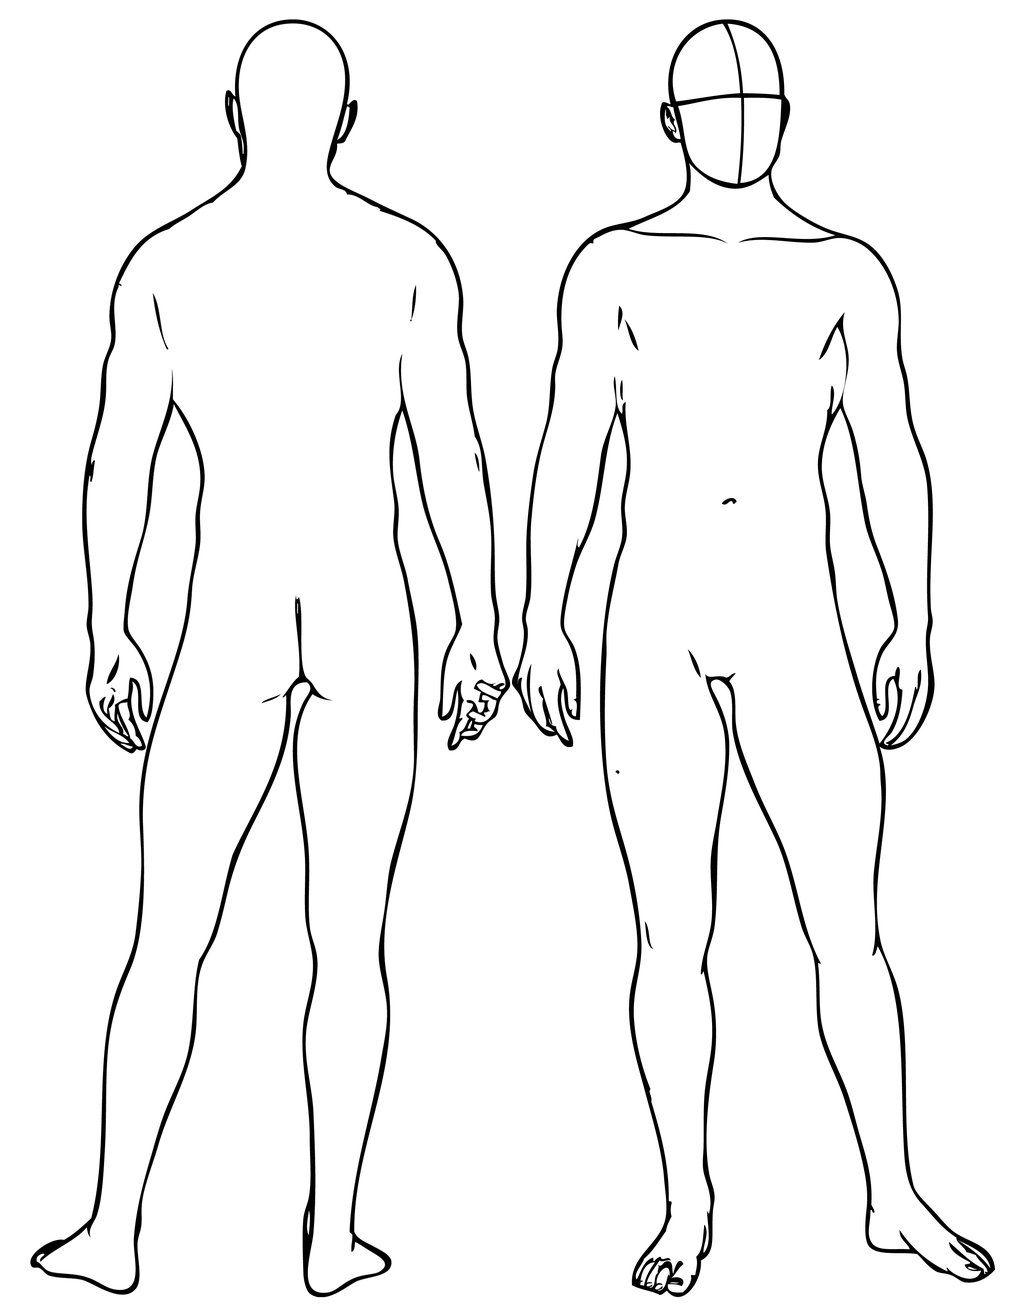 Male body drawing base google search drawing base body drawing art poses